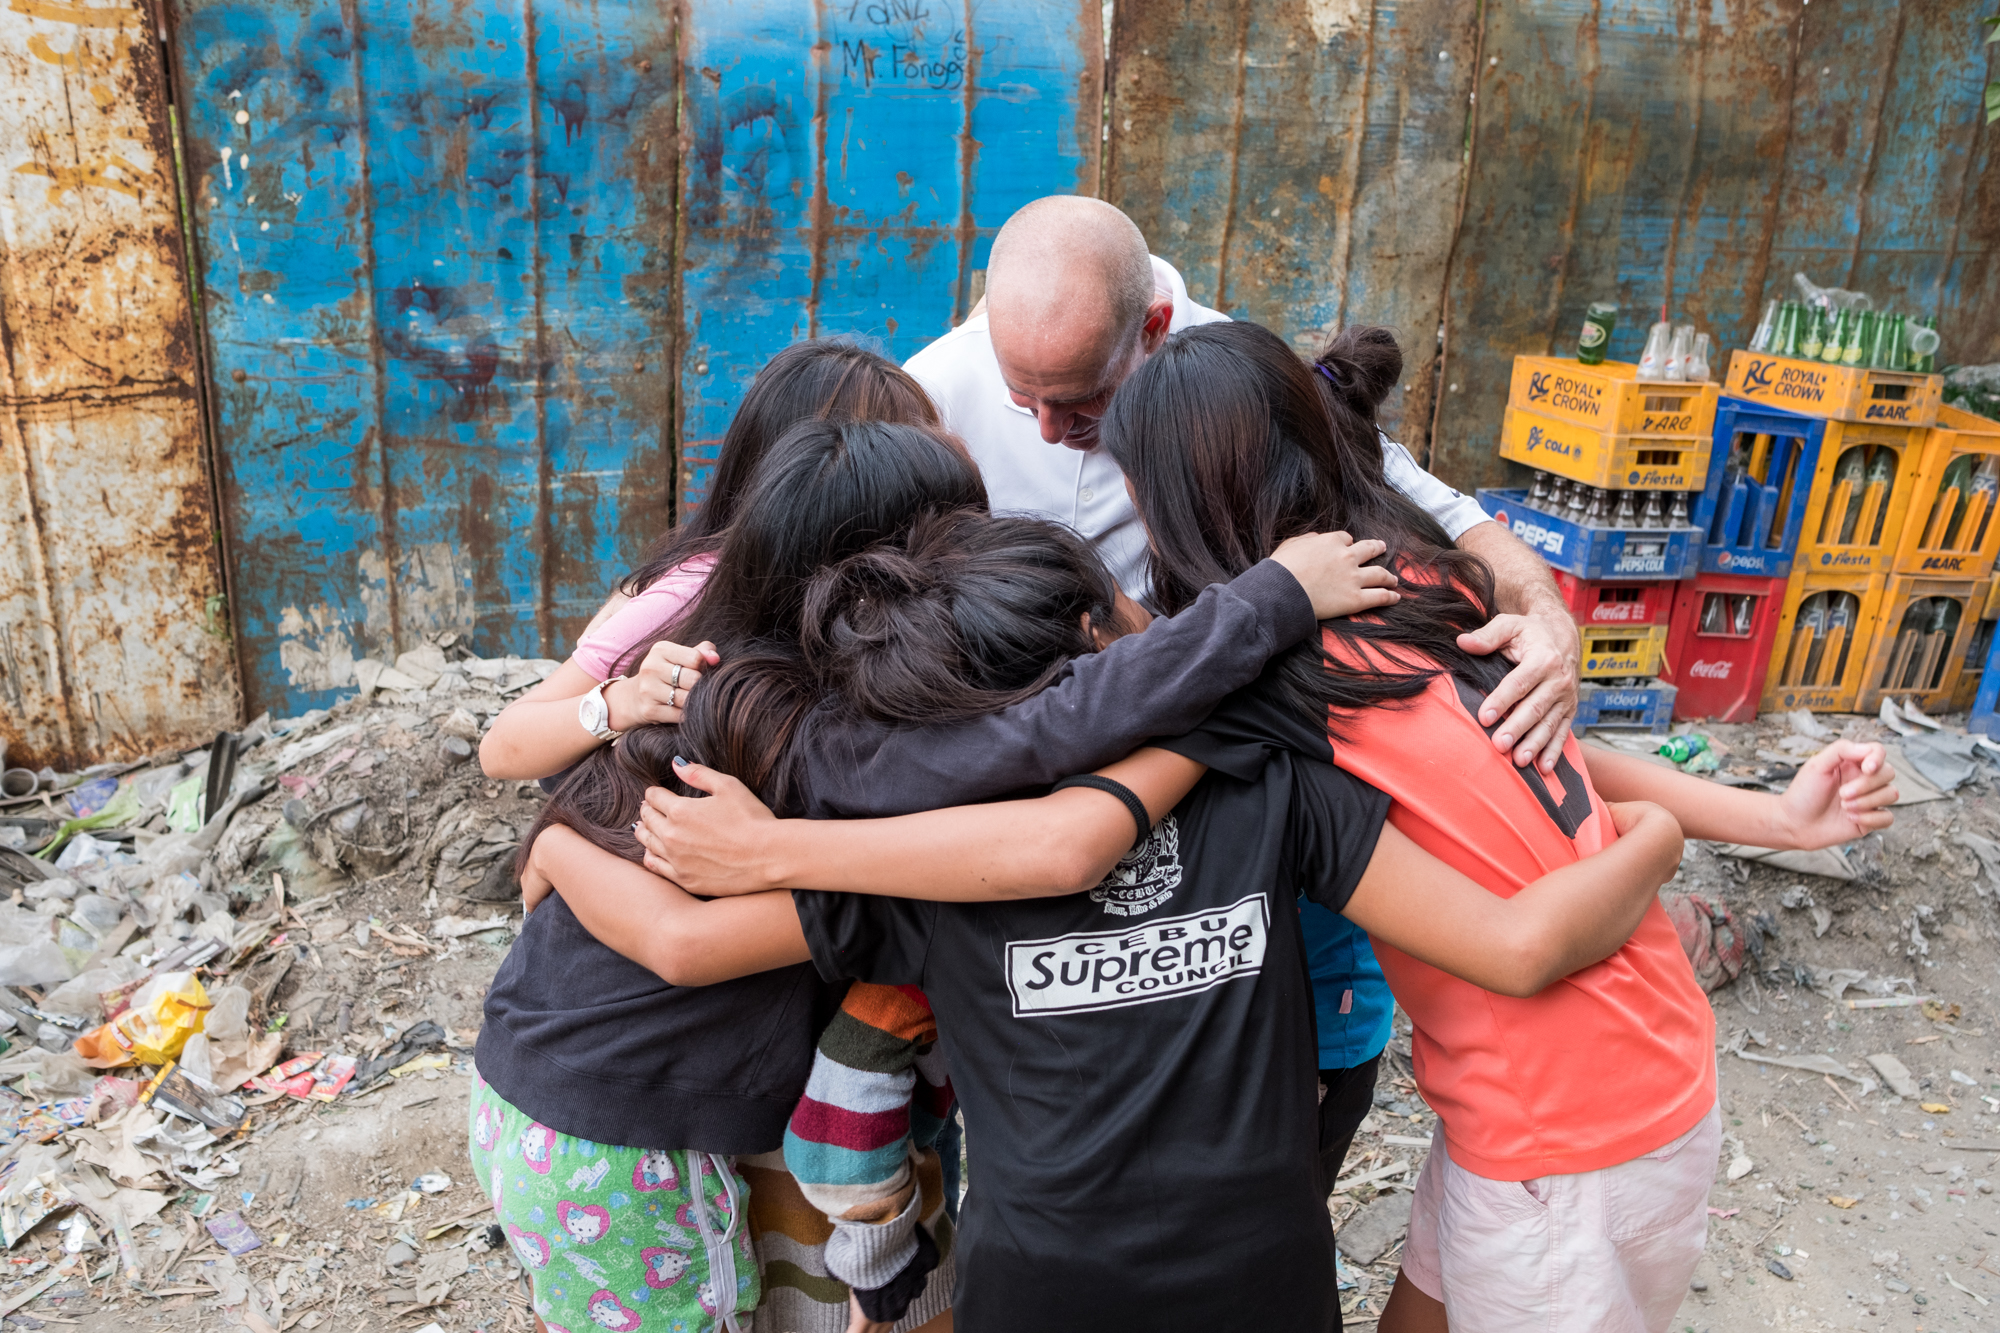 Frank Becker (center) has a group hug with several teenagers who live near the Mandaue Dump Site in Cebu, Philippines. Frank has been returning to this dumpsite for many years, so he has established strong bonds with teens and their families.